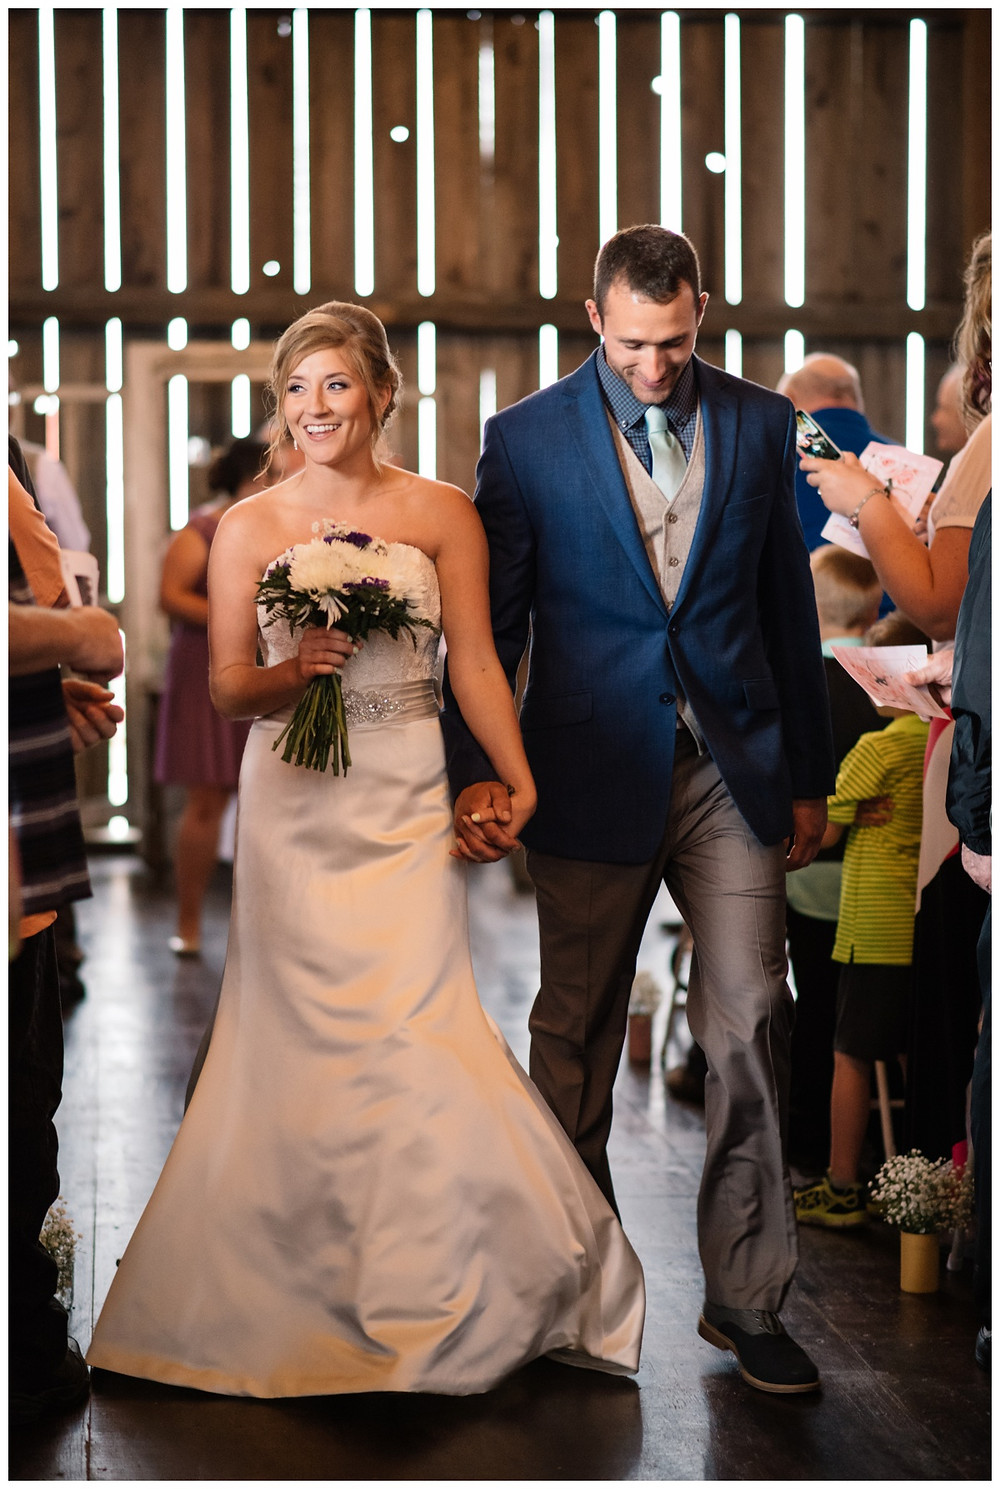 bride-and-groom-walking-down-aisle-at-brighton-acres-wedding-by-milwaukee-wedding-photographer-kyra-rane-photography